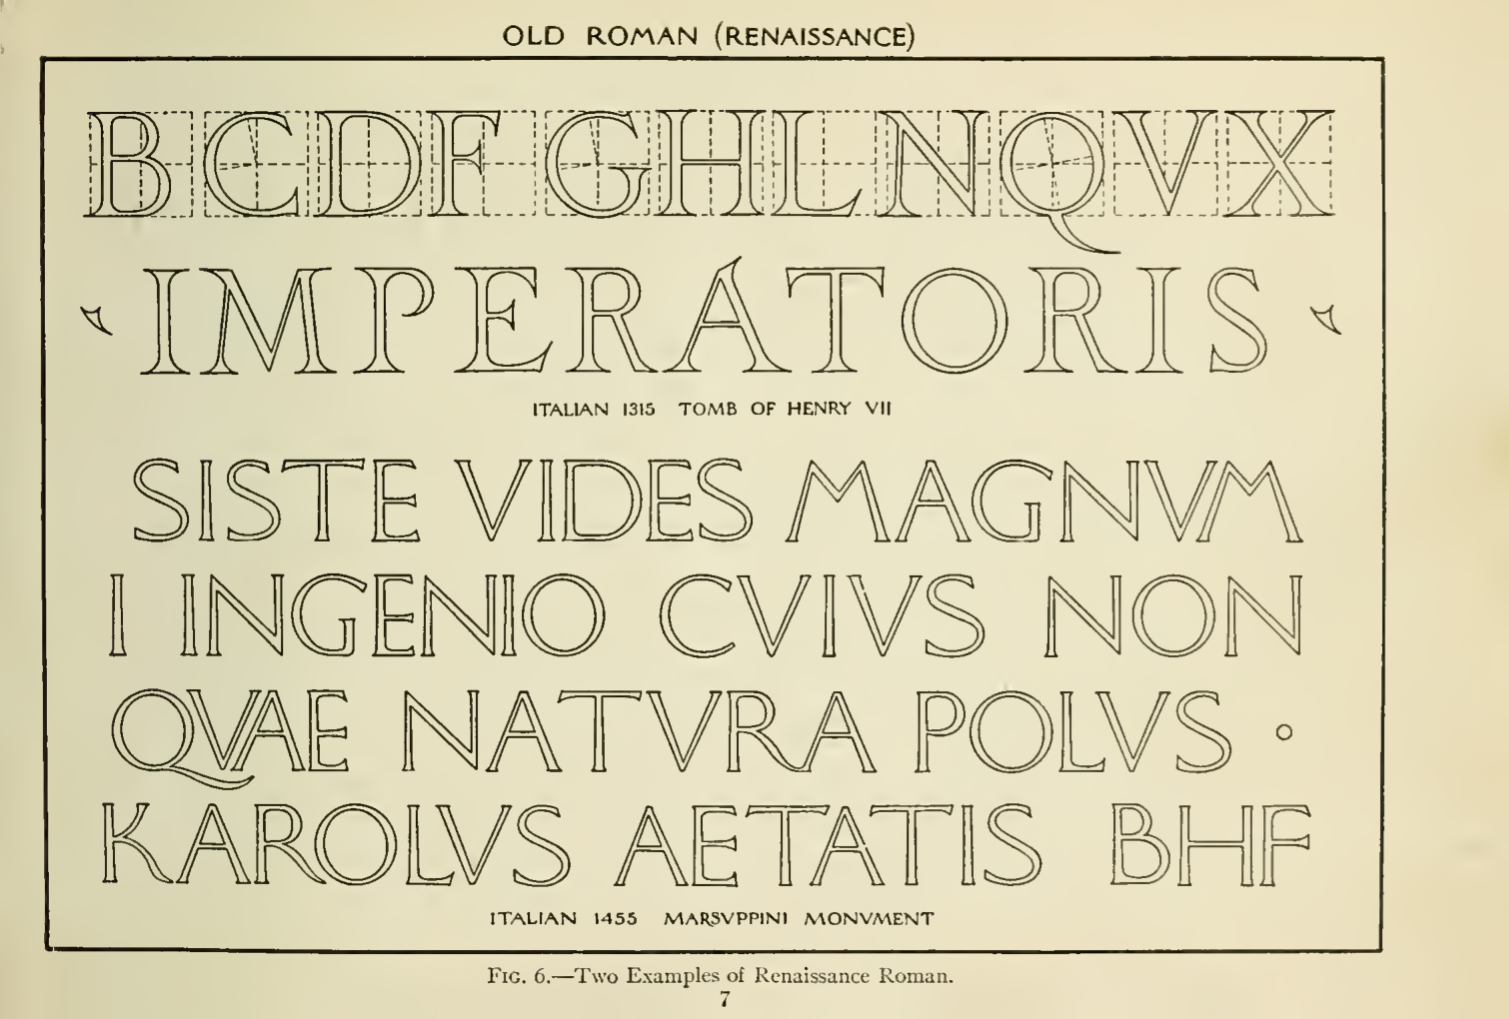 Old Roman - The Essentials of Lettering (1912)